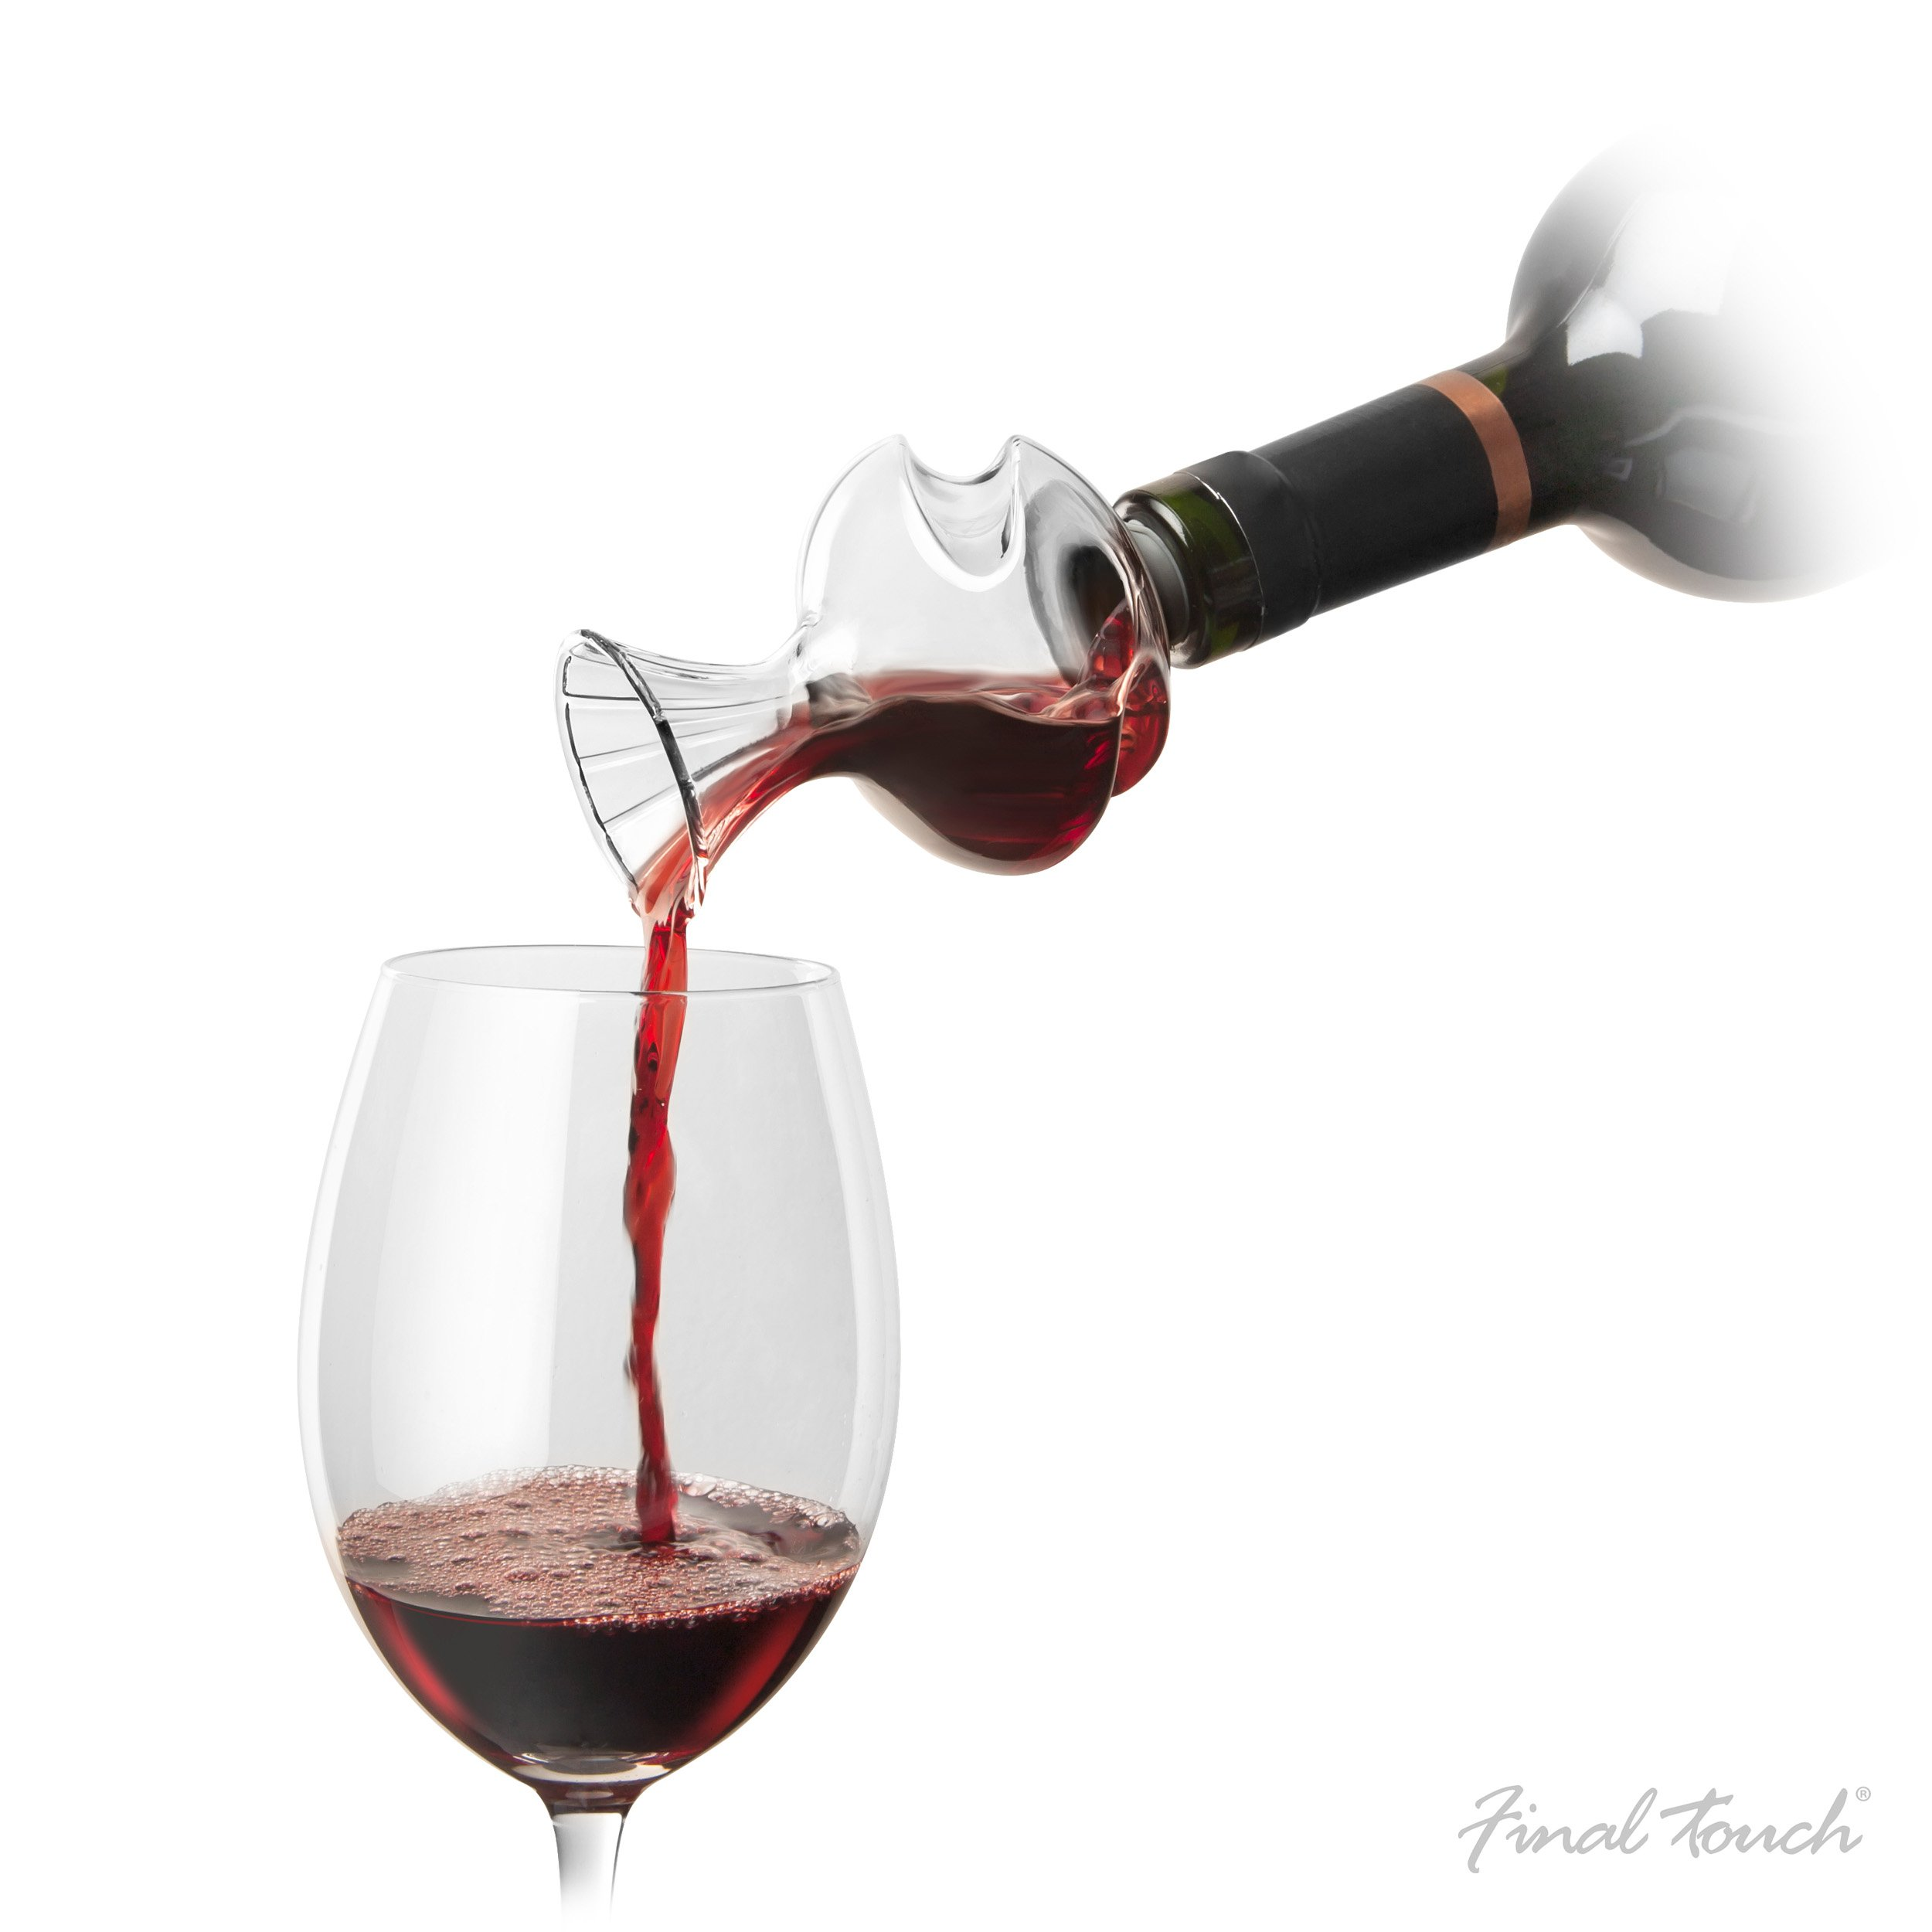 The Swirl Glass Wine Aerator with Stand - On The Bottle Wine Scent & Flavor Enhancer by Final Touch (Image #2)